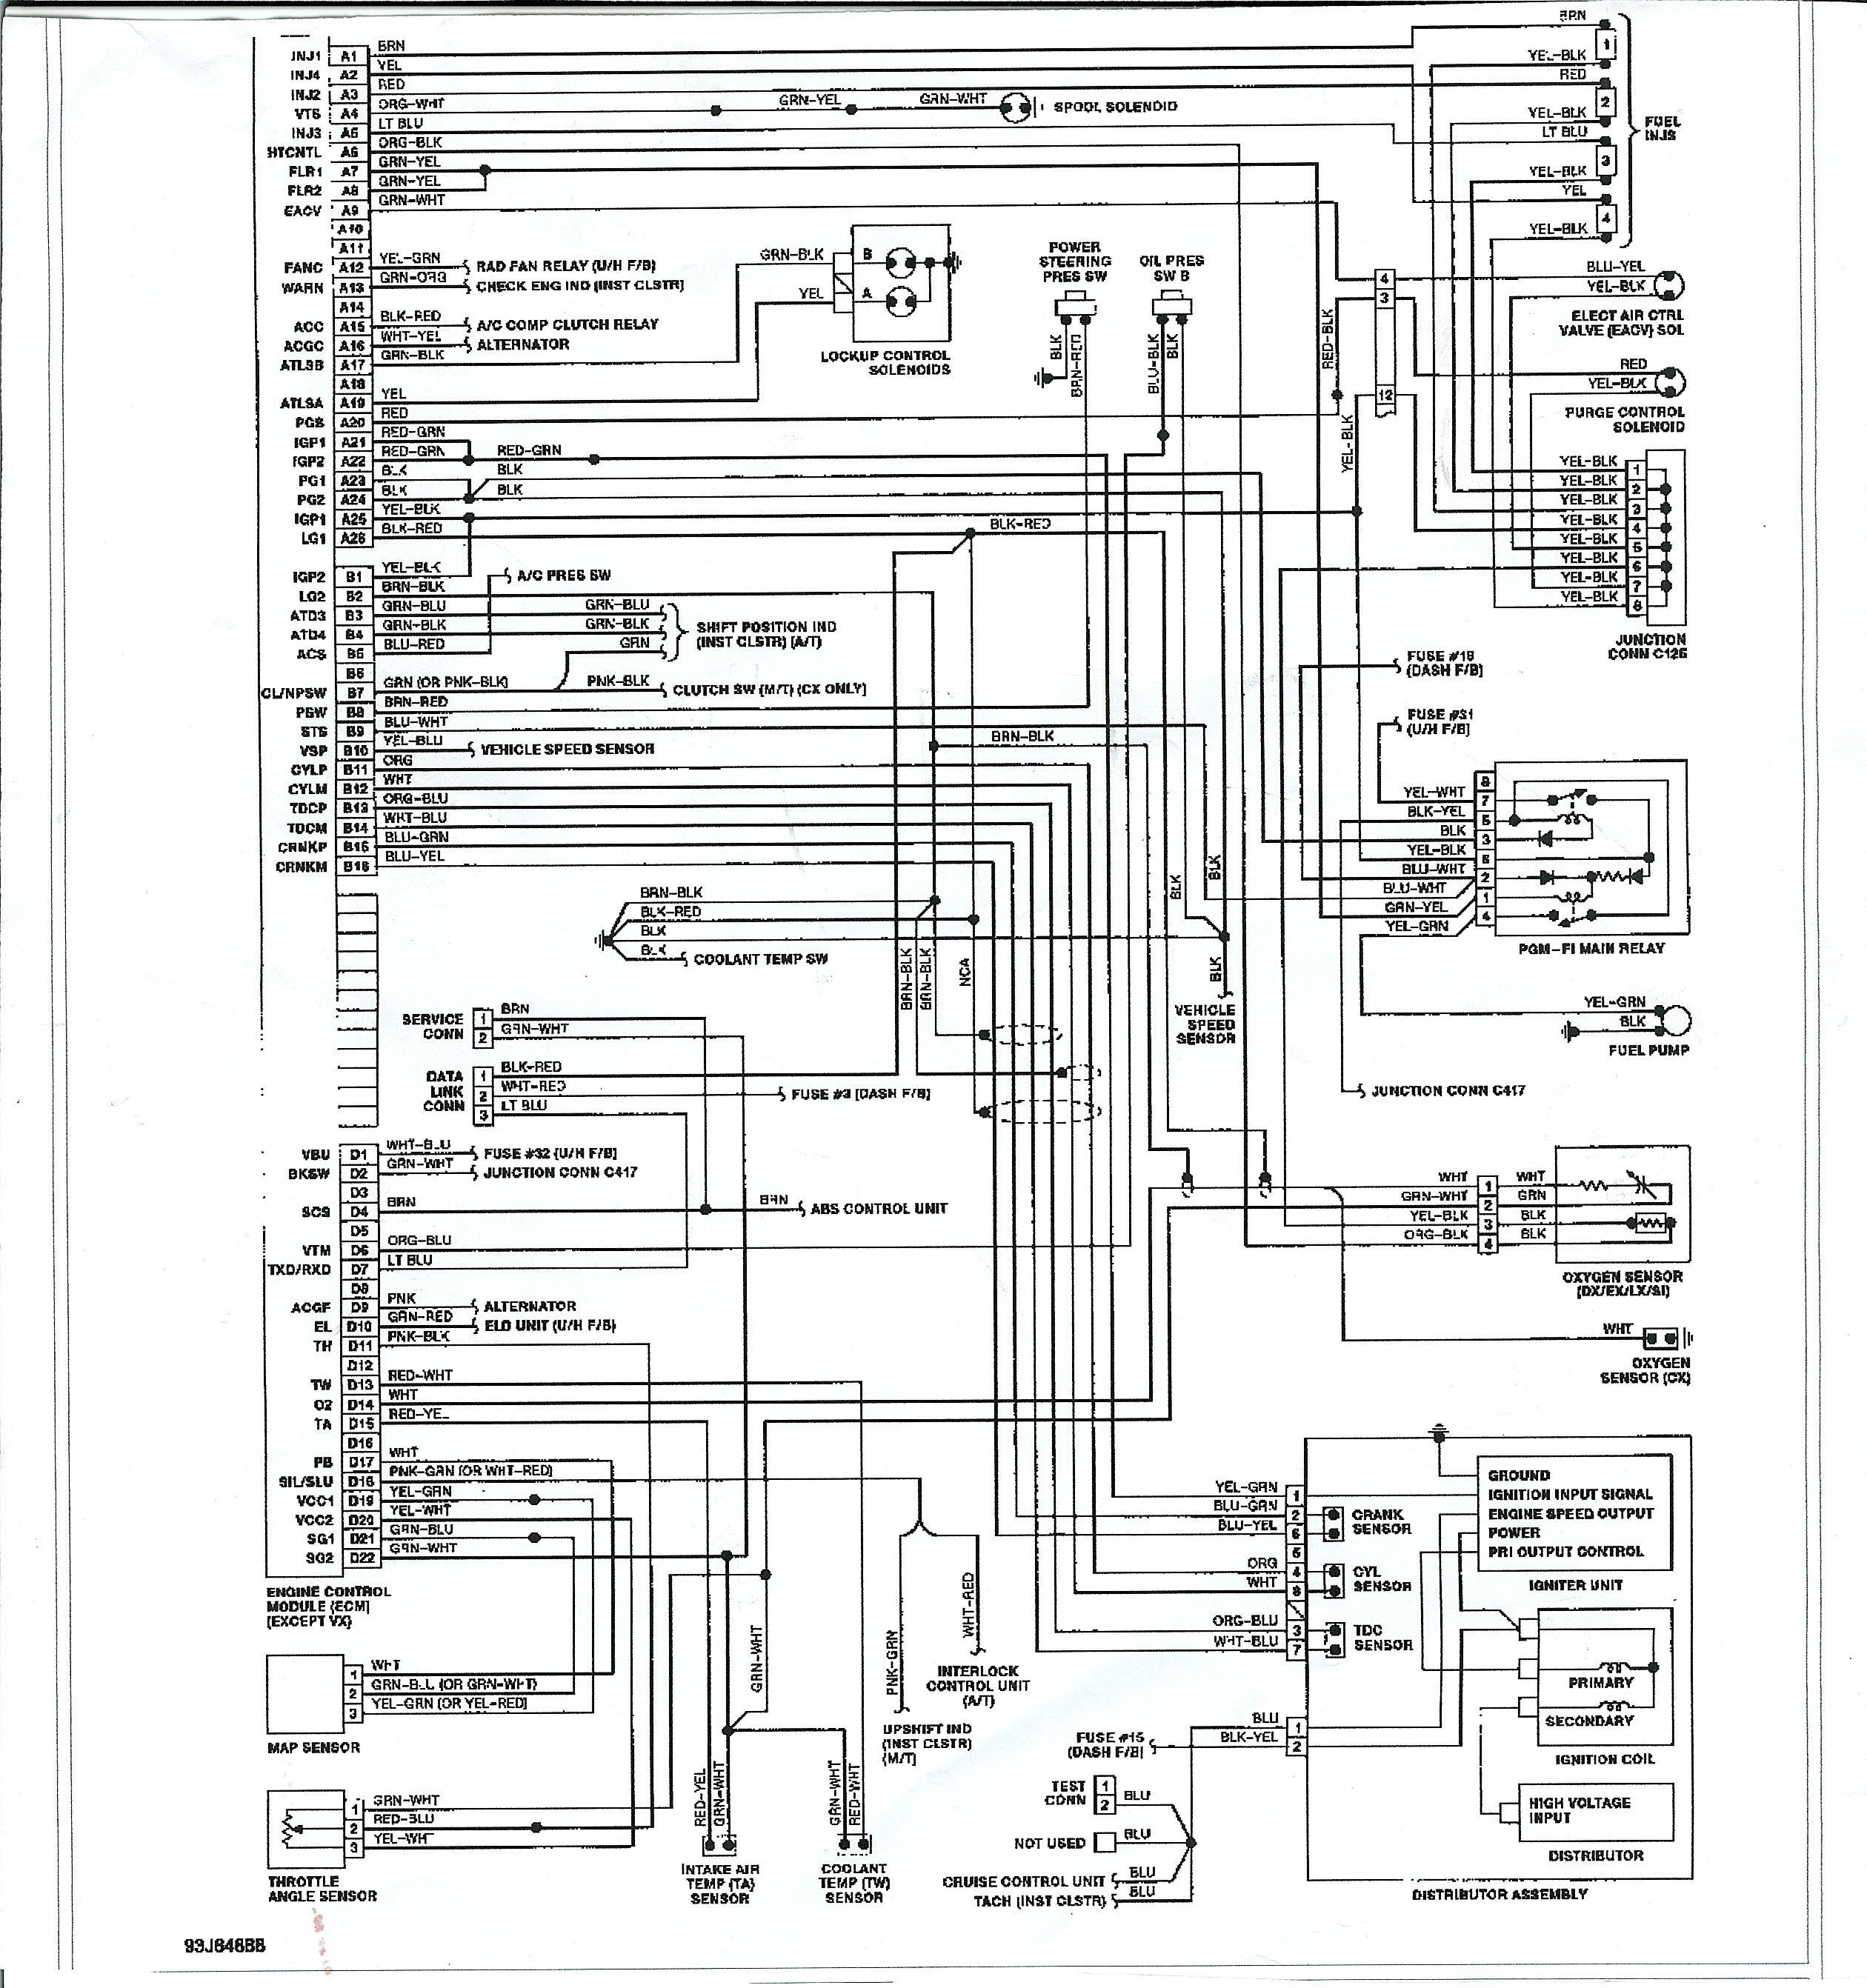 2001 Honda Accord Engine Diagram 1996 Honda Accord Ignition Wiring Diagram Inspirational Ac Wiring Of 2001 Honda Accord Engine Diagram